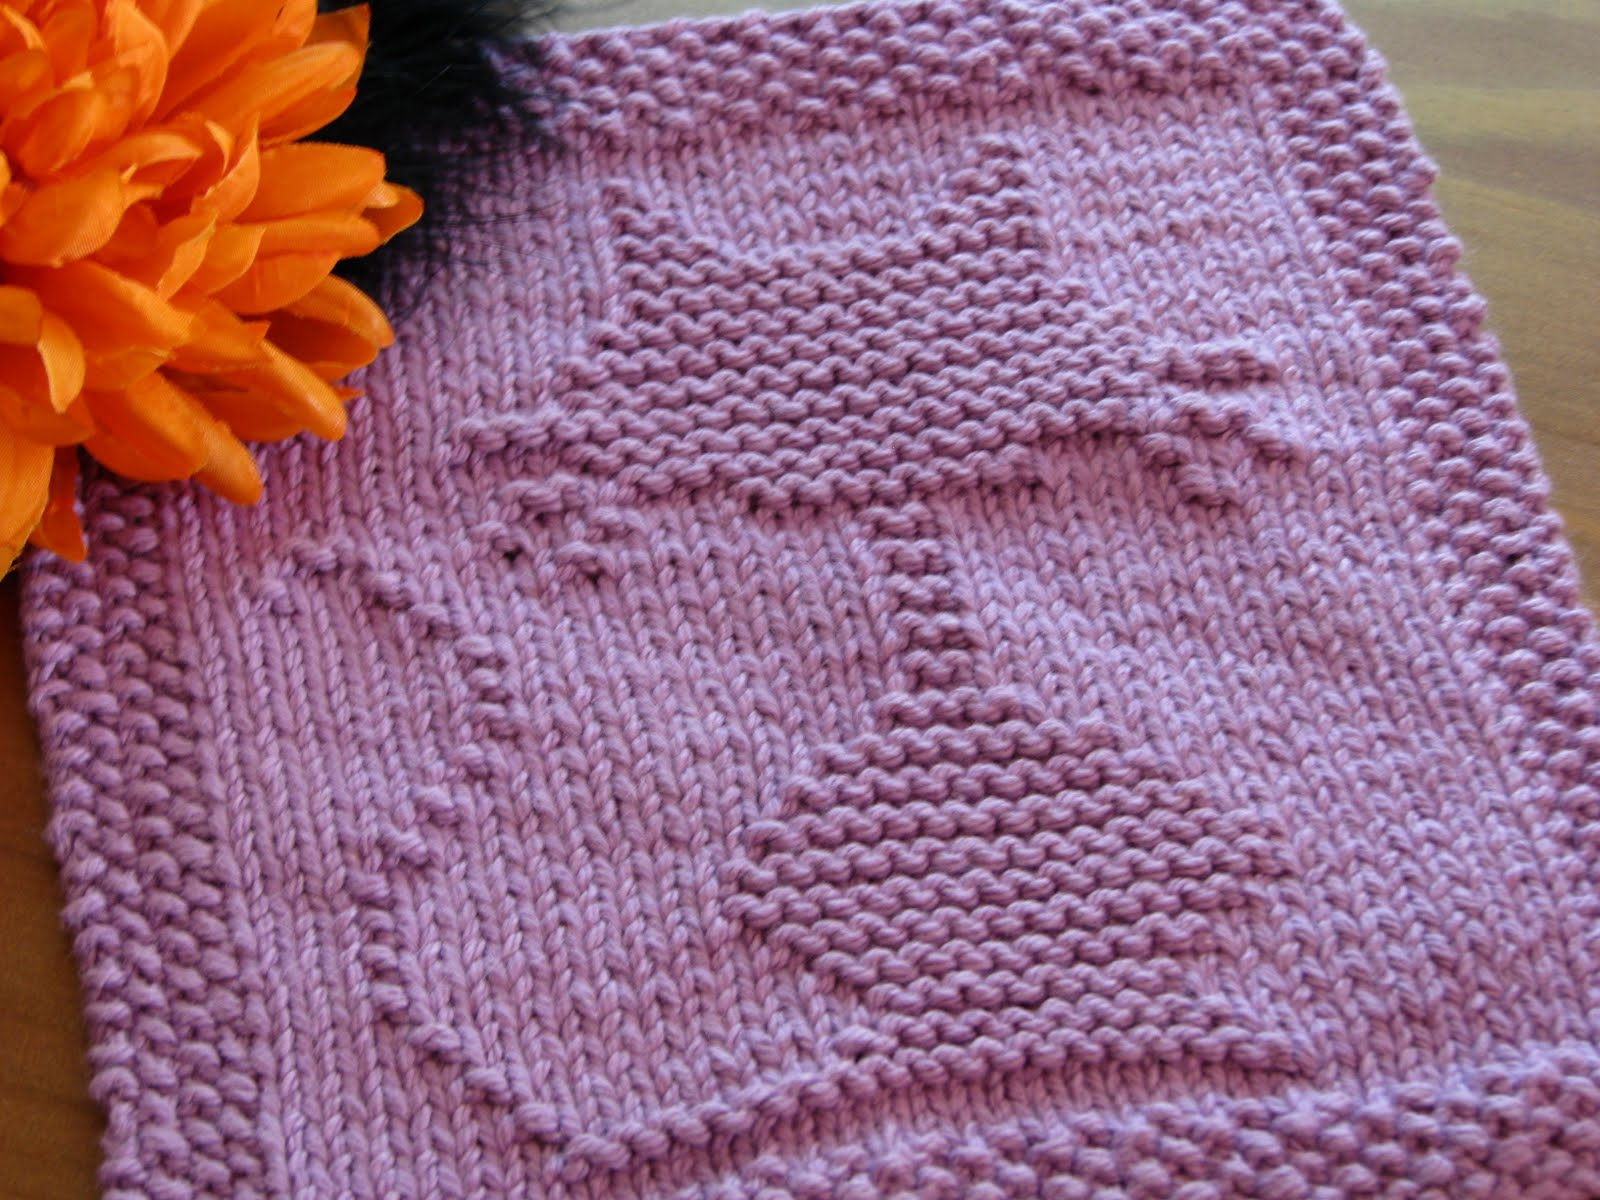 Dishcloth Knitting Pattern : One Crafty Mama: Halloween Cat Dishcloth